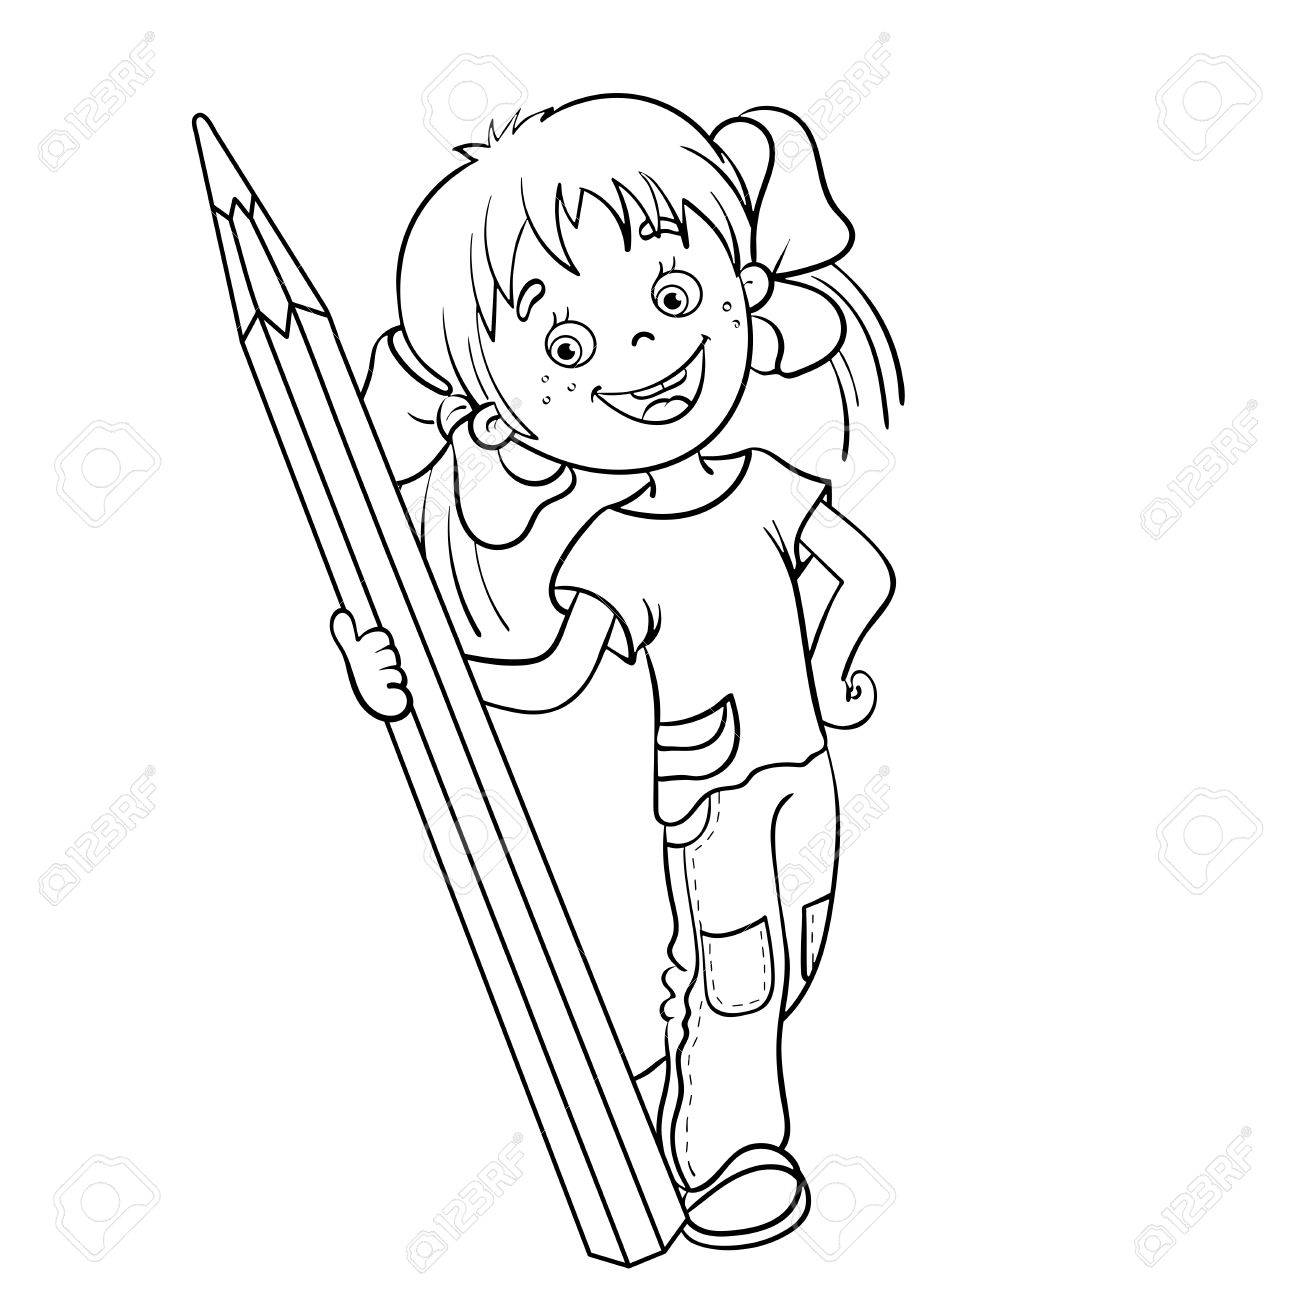 coloring page outline of a cartoon girl with pencil royalty free coloring pages of makeup sets